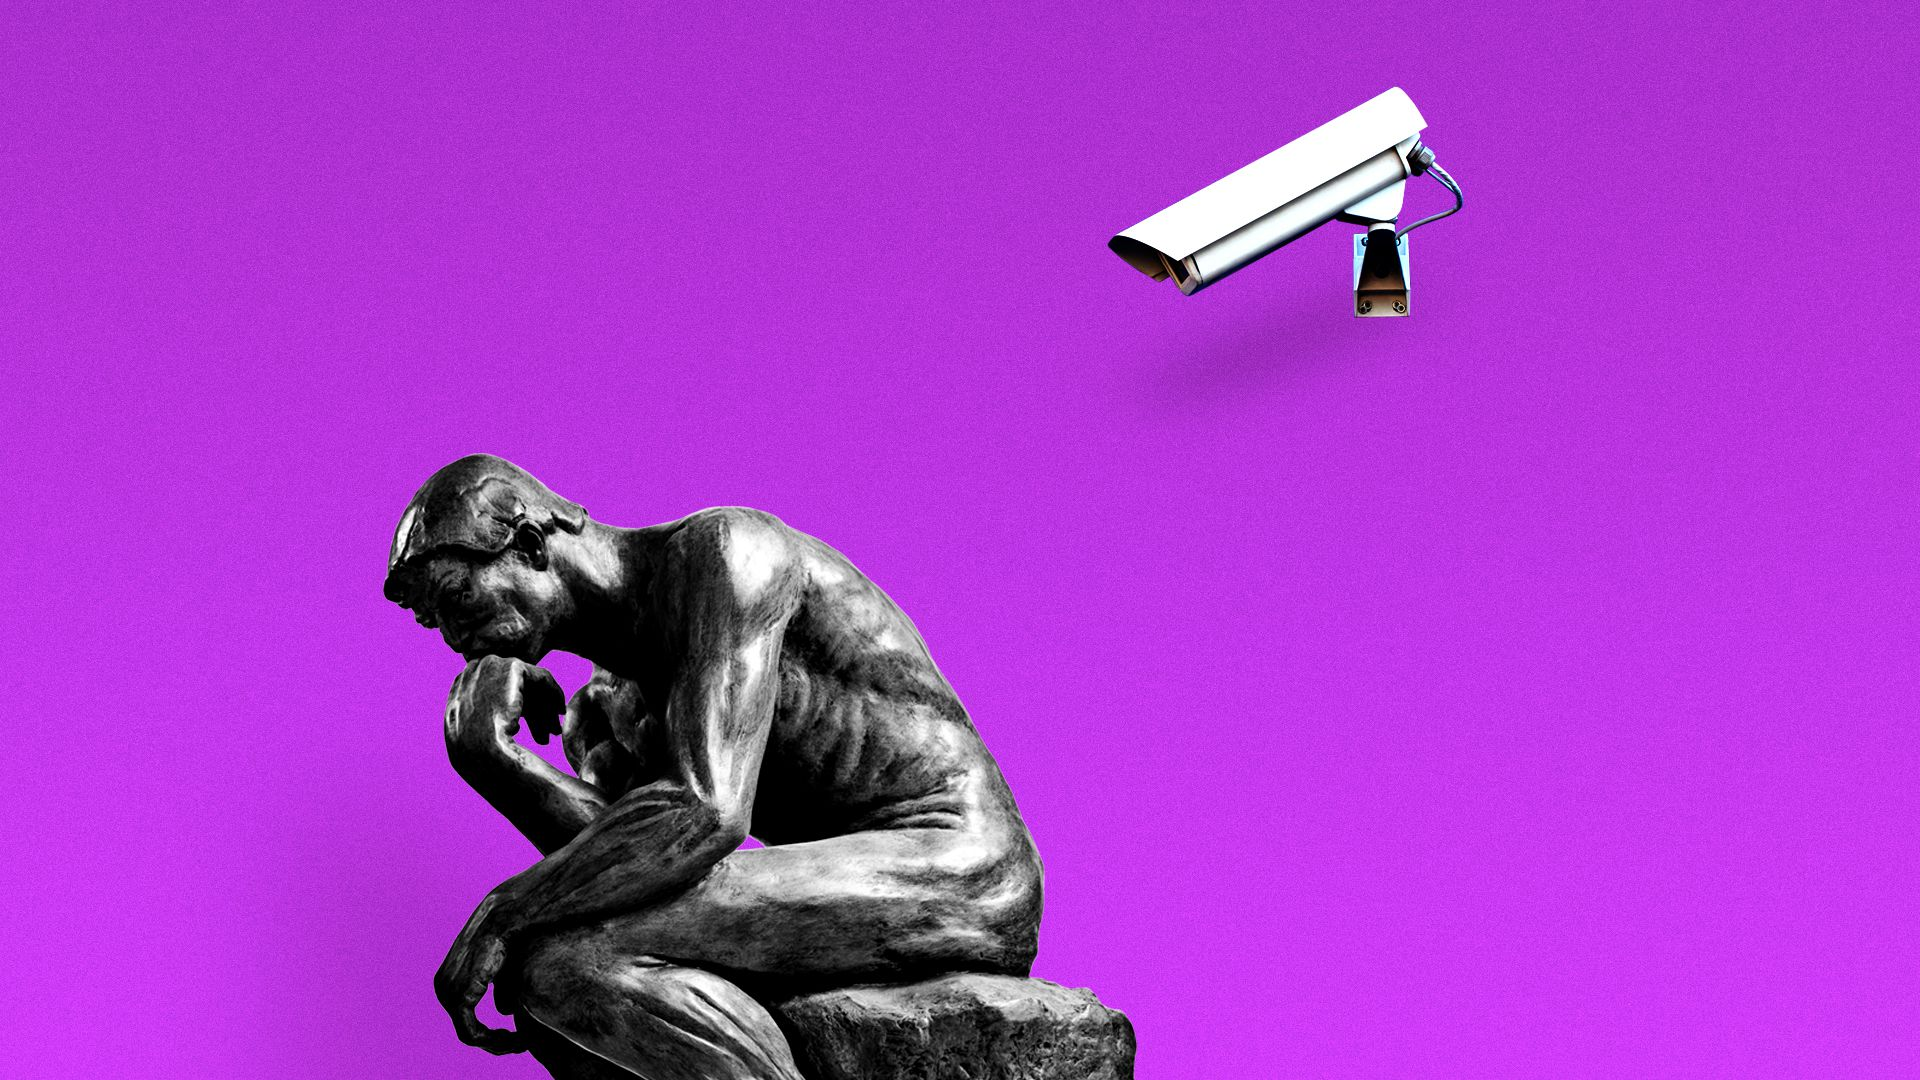 Artificial intelligence is making it chillingly easy for tyrants to surveil people